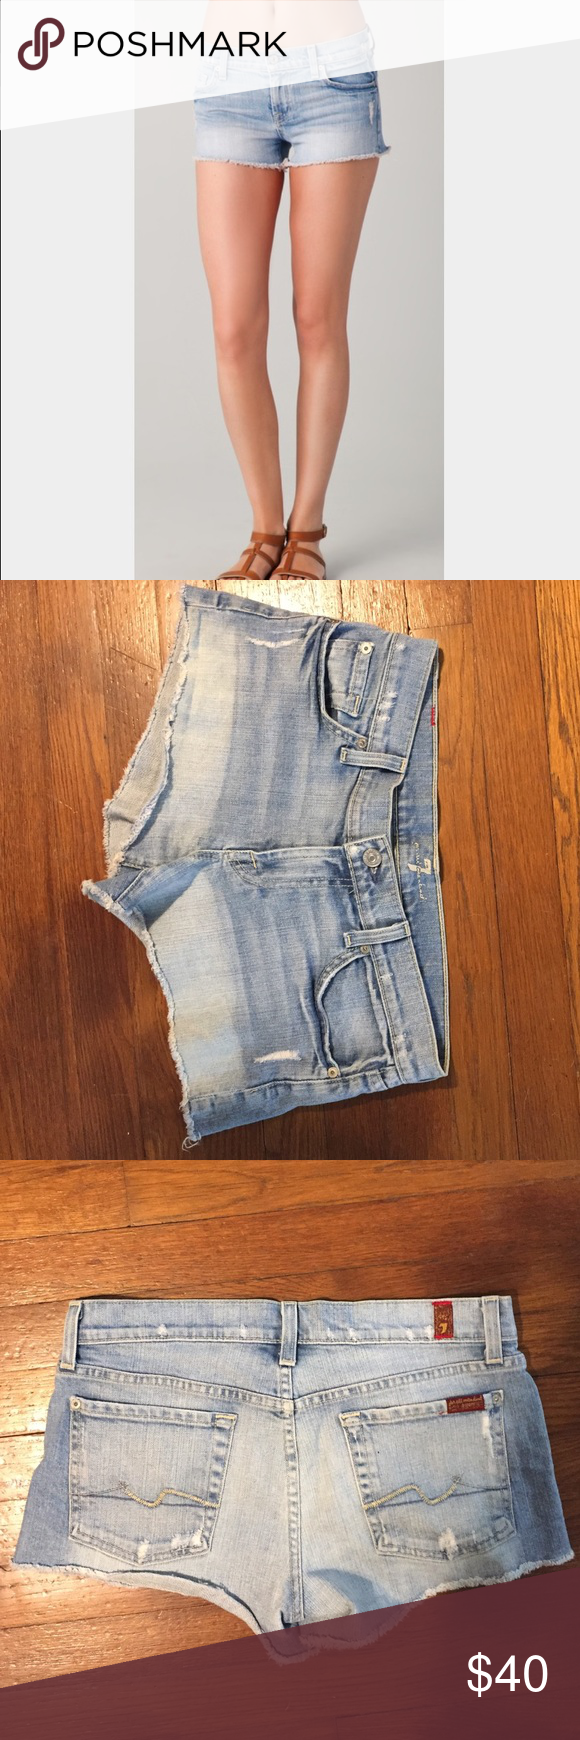 """7 For All Mankinds cutoff Denim shorts 7 For All Mankinds cutoff Denim shorts. Size 27. 3"""" inseam. Light wash 7 For All Mankind Shorts Jean Shorts"""